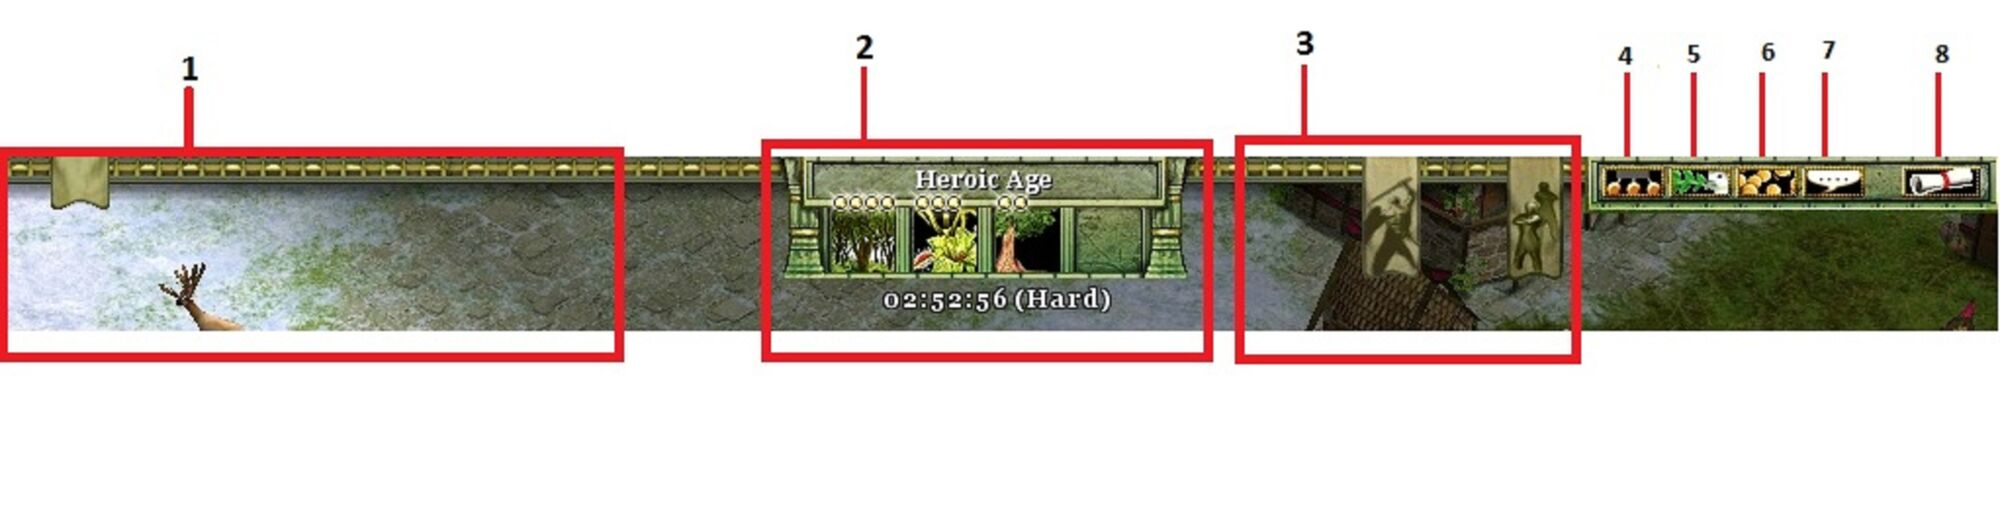 User interface | Age of Empires Series Wiki | FANDOM powered